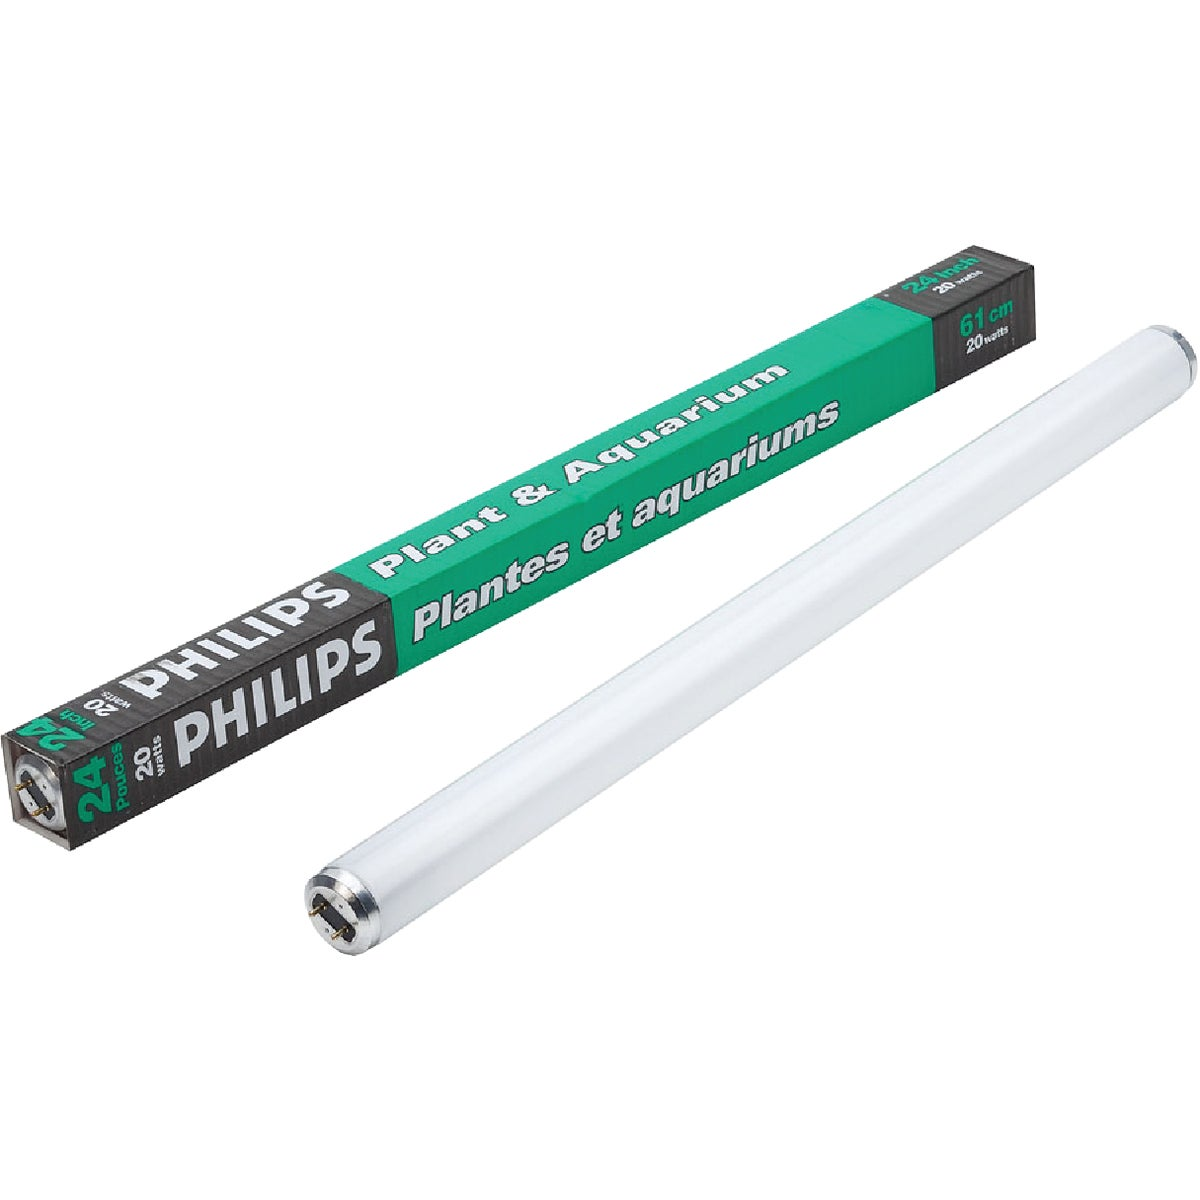 20W PLANT/AQUARIUM TUBE - 49891 by G E Lighting